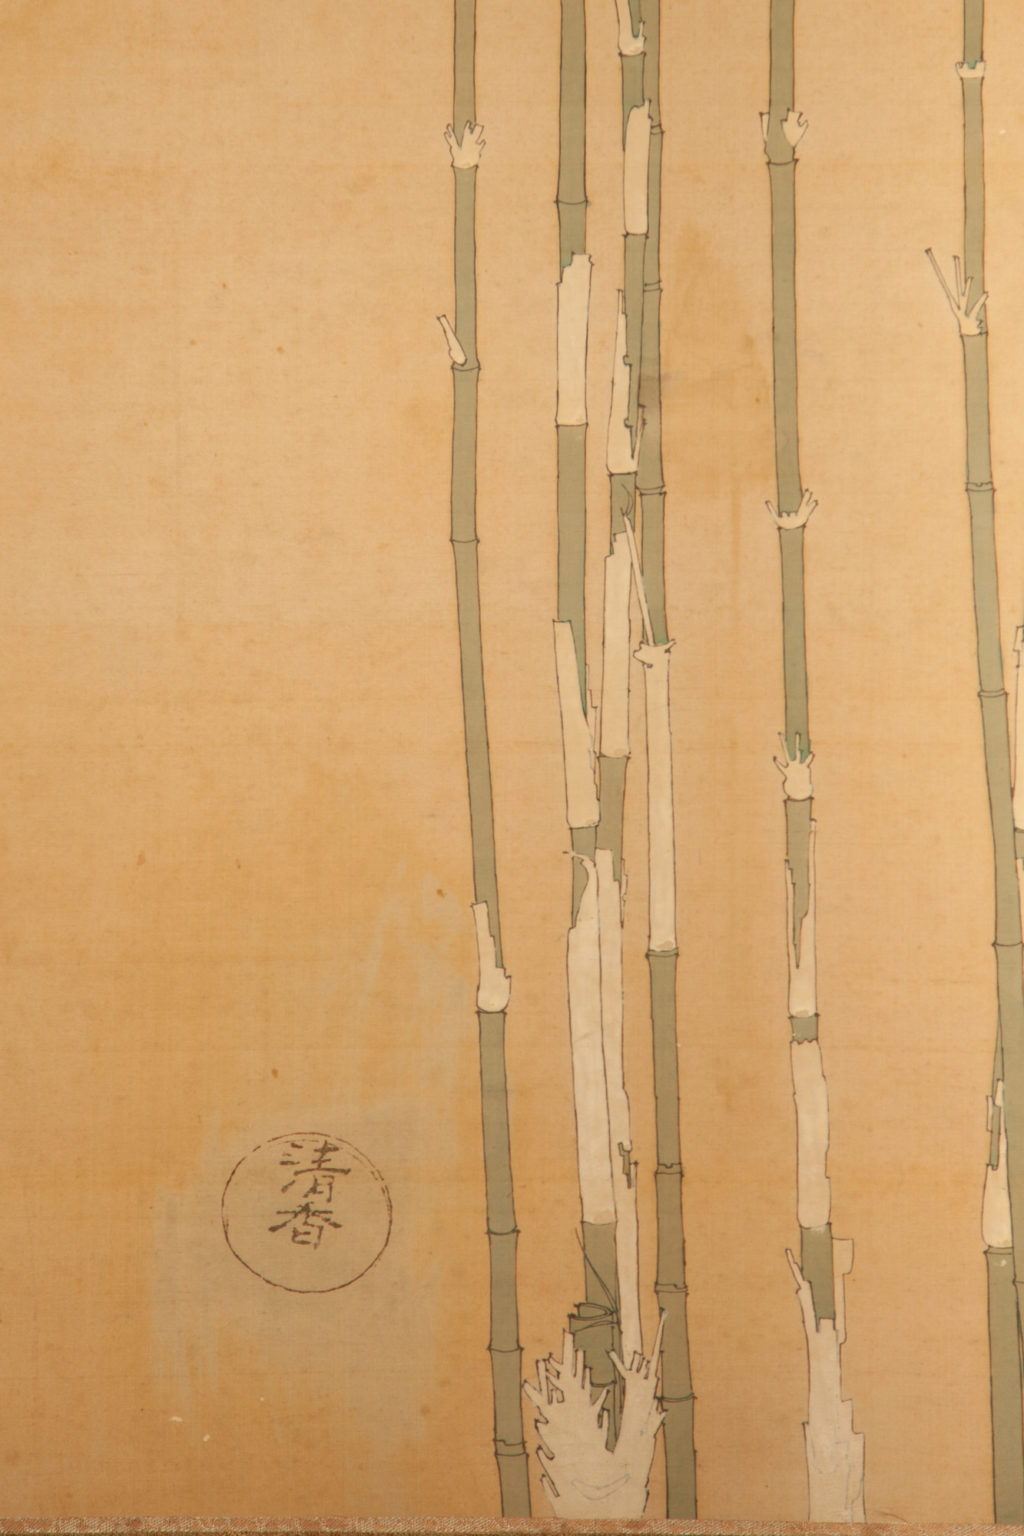 Japanese Four Panel Screen: Bamboo, Finches and Sparrows